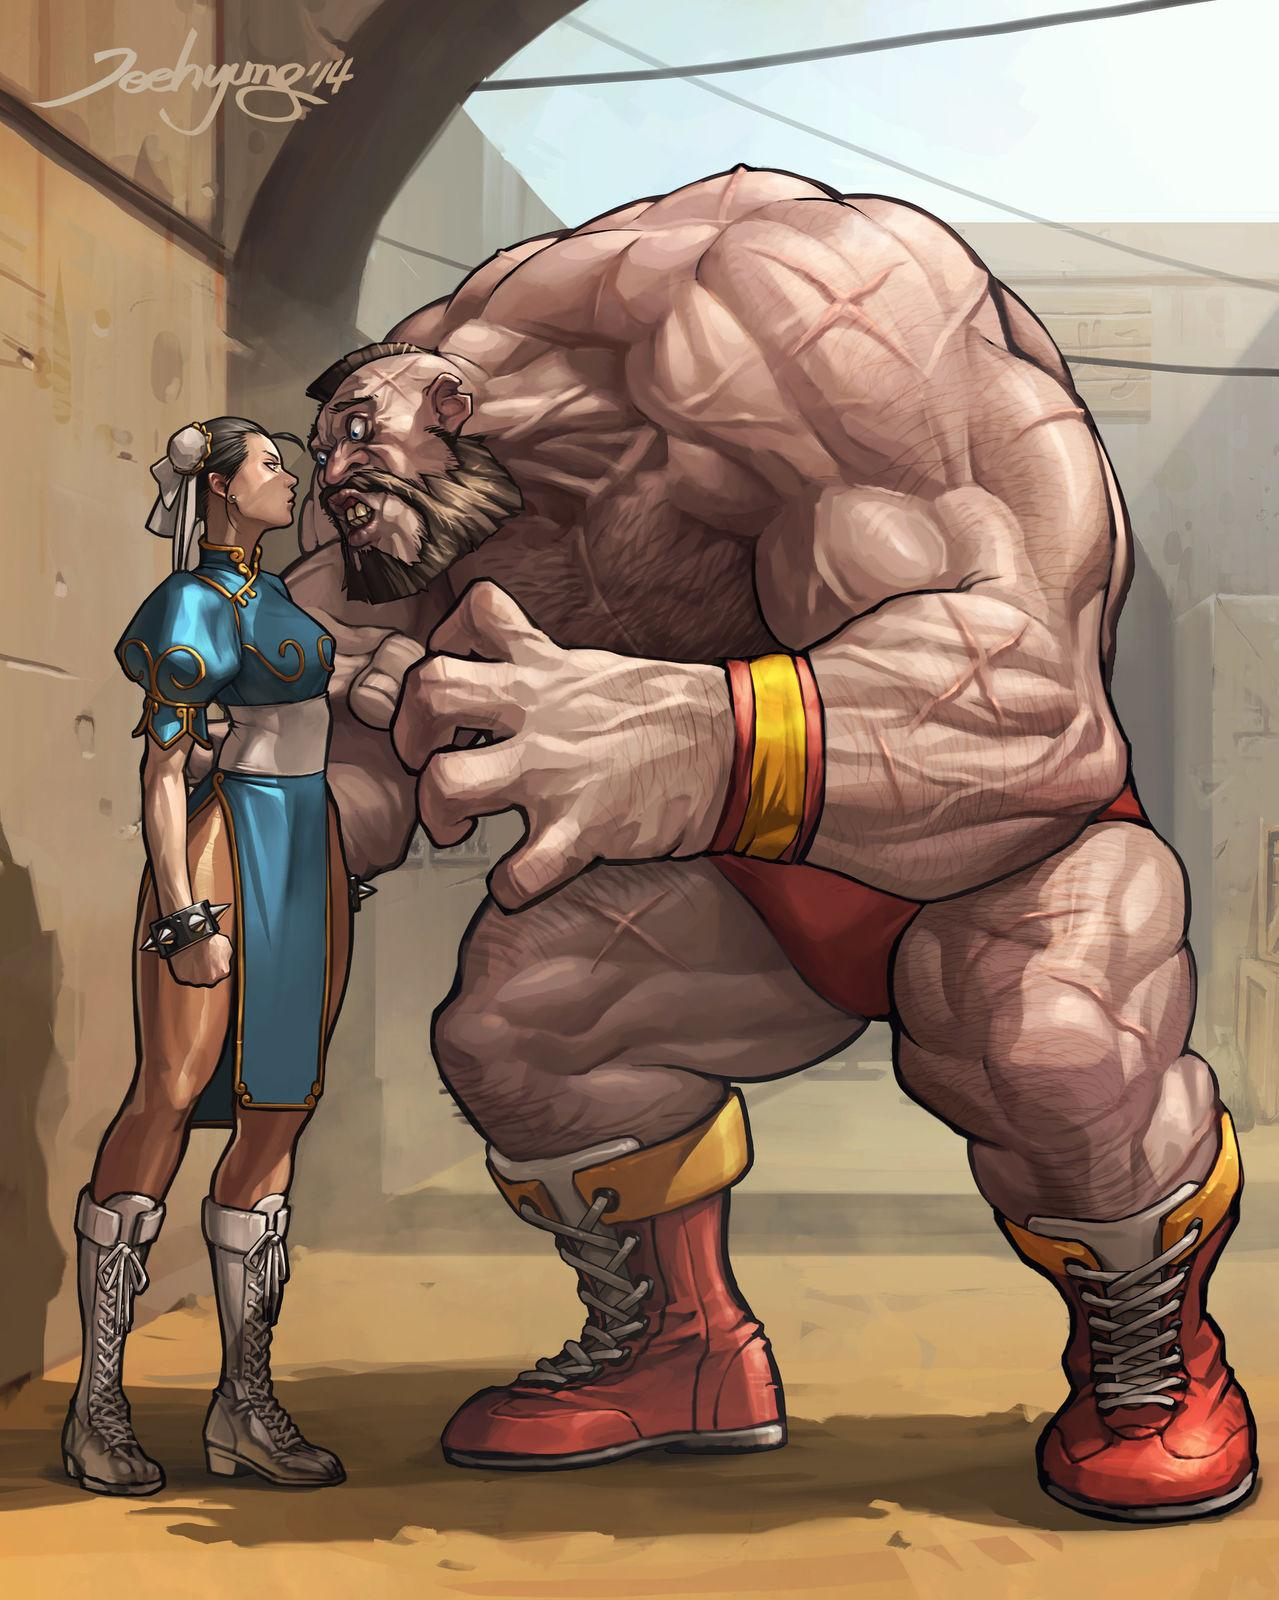 Street Fighter par by LEE JEEHYUNG #capcom #streetfighter http://t.co/AUoZjzI1iT